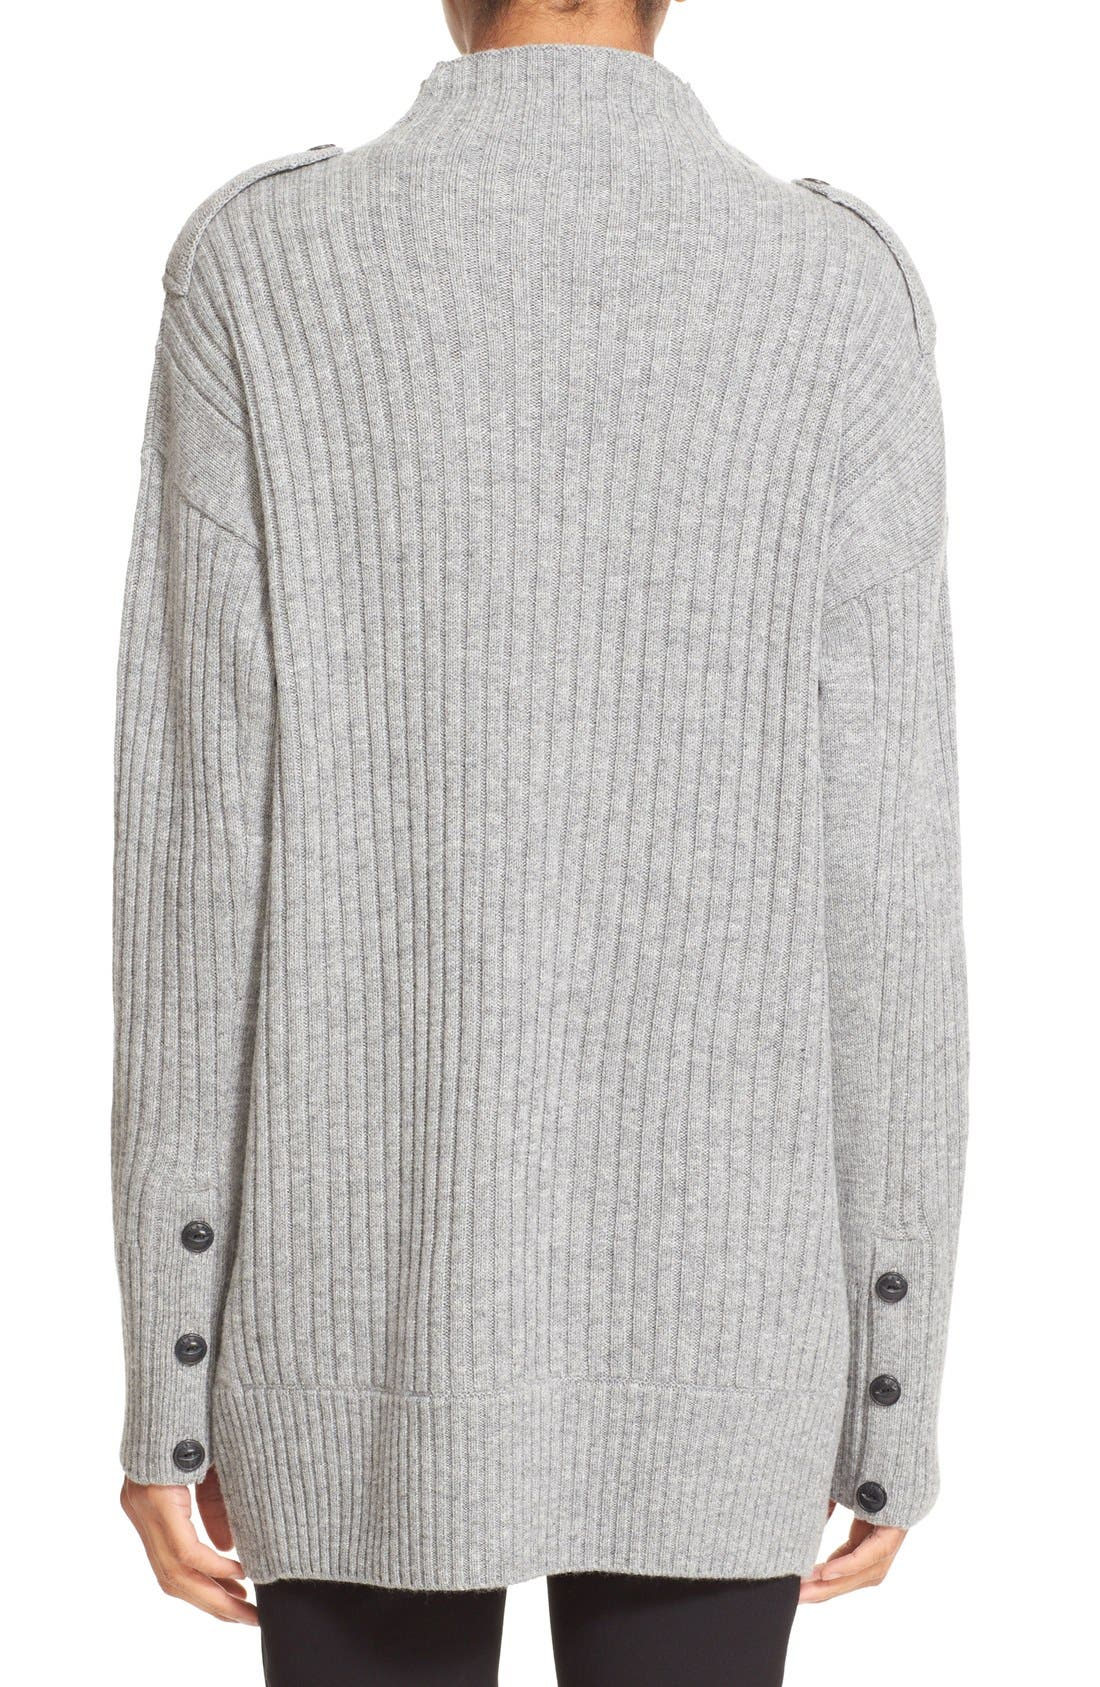 Alternate Image 2  - rag & bone 'Dale' Merino Wool Turtleneck Sweater